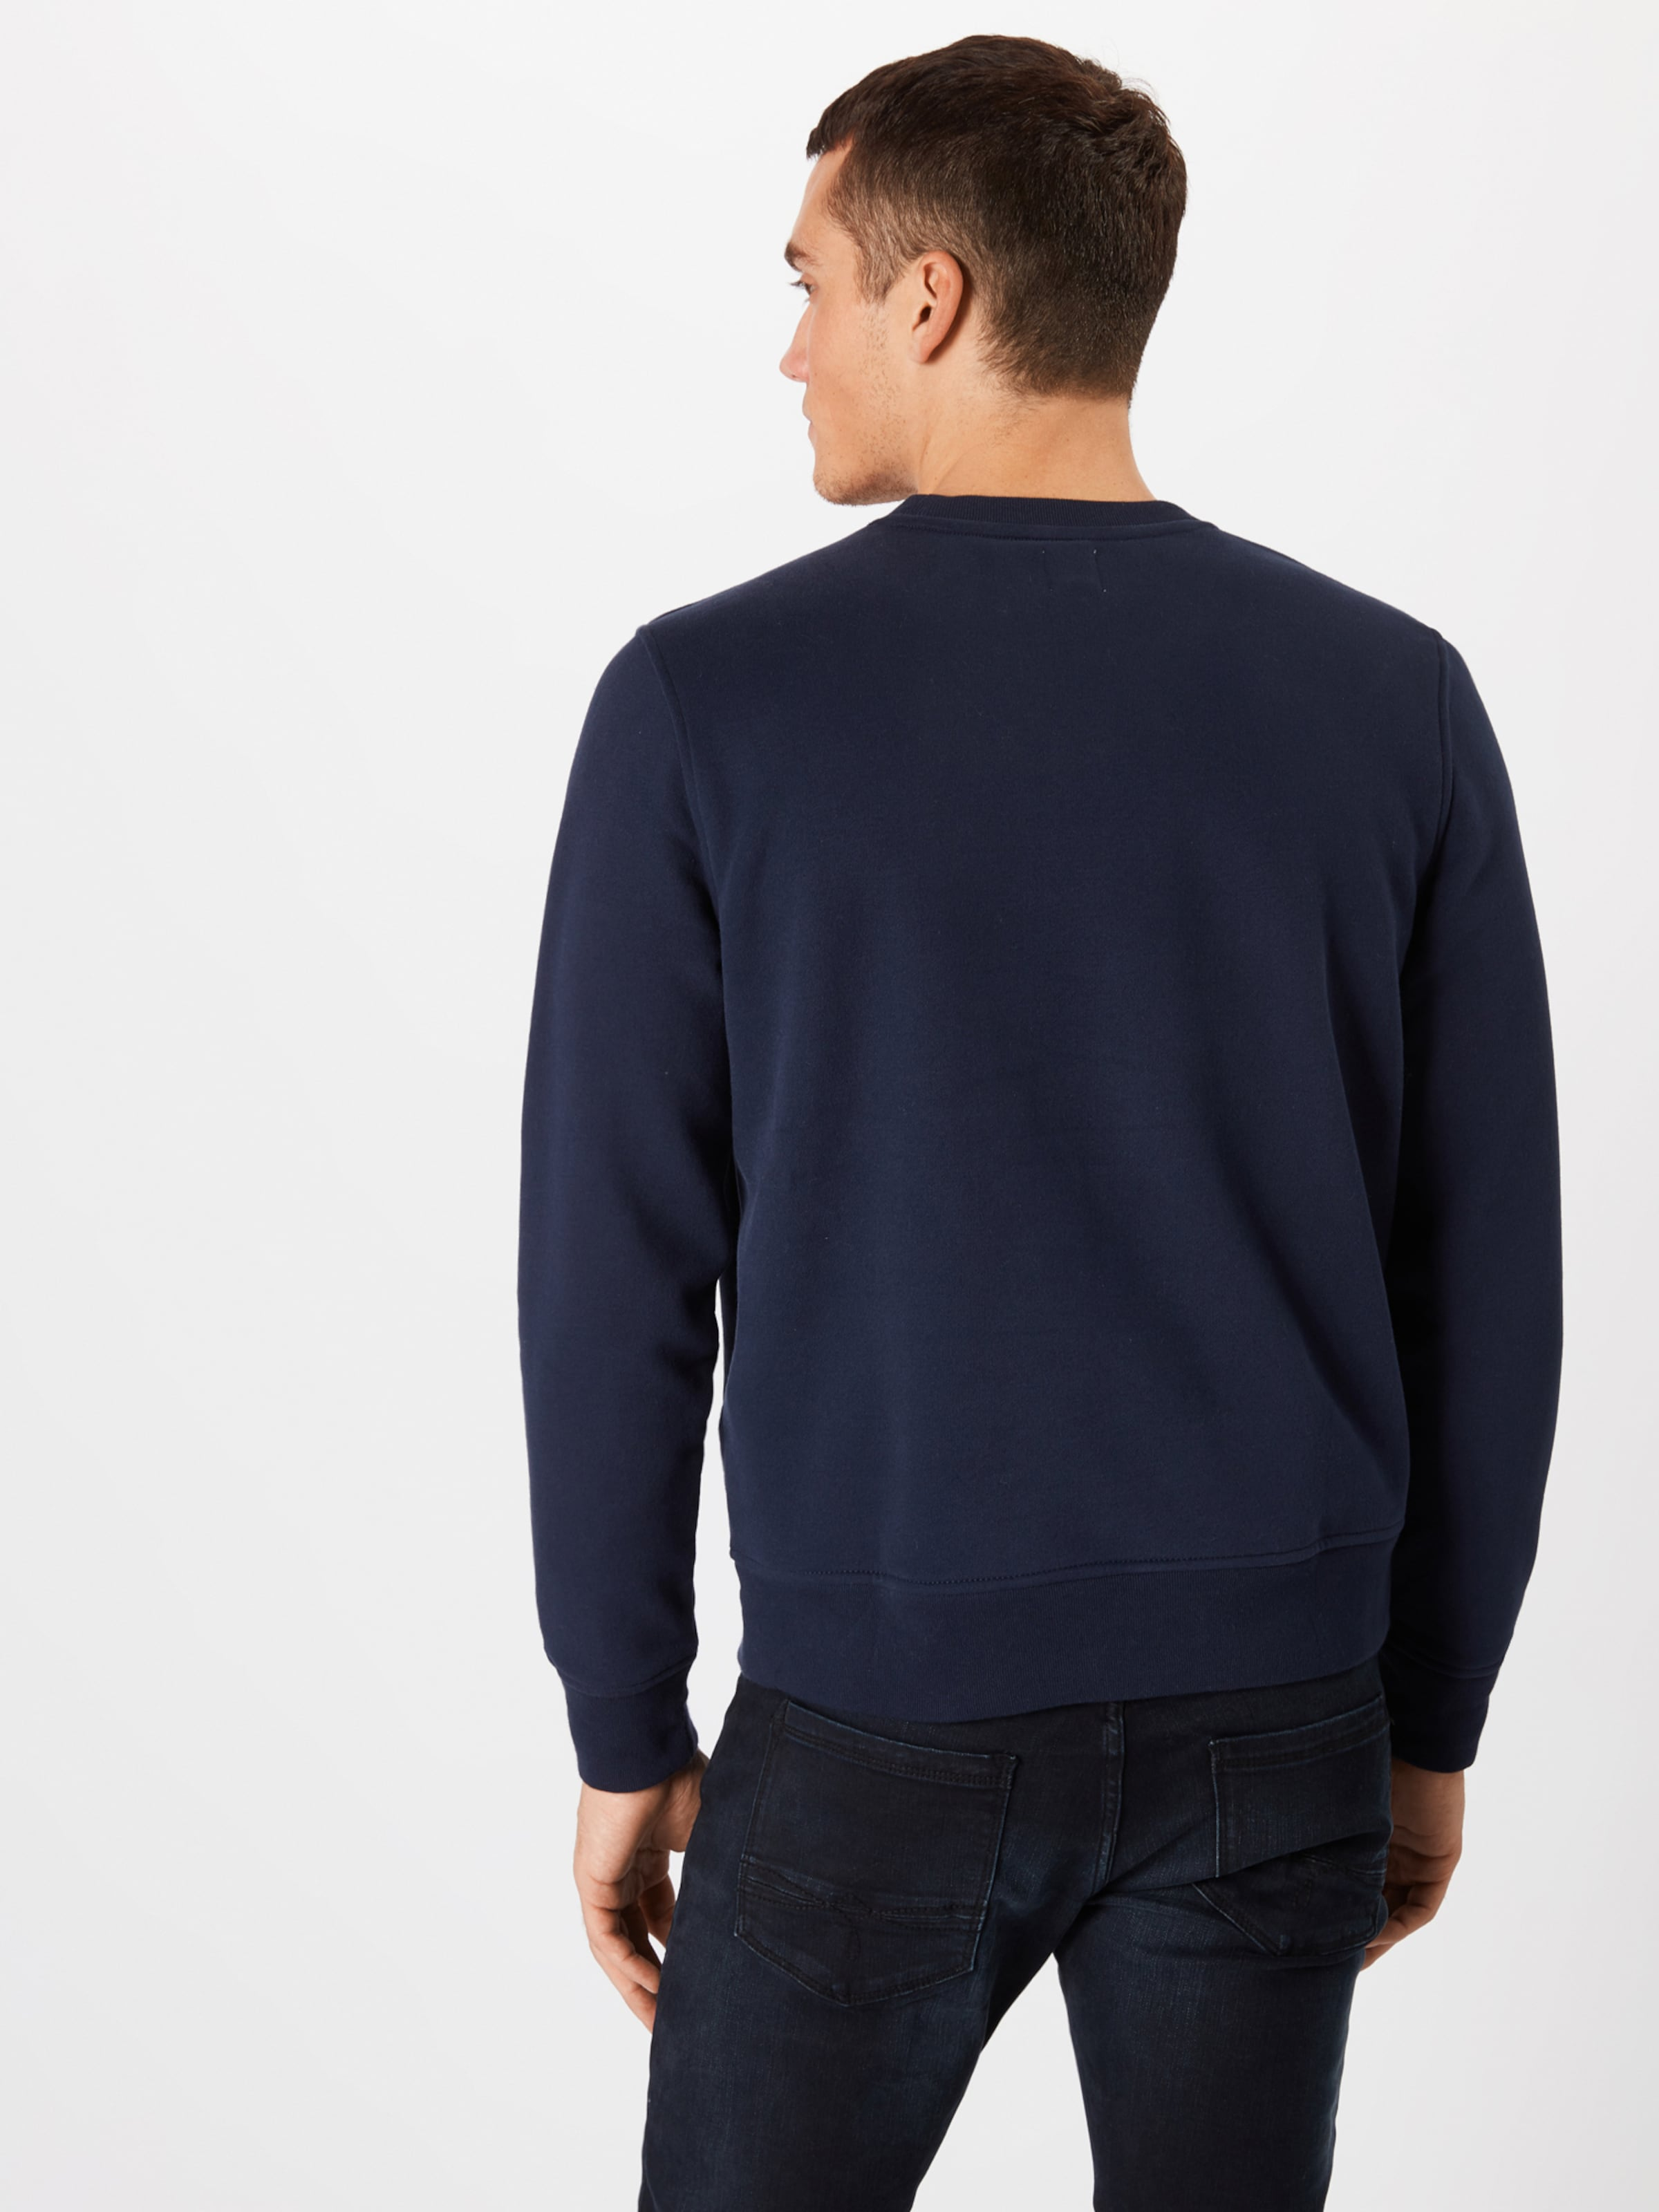 Fleece Marine Bleu 'sueded Gap Crew' shirt En Sweat wZuTPkXOi